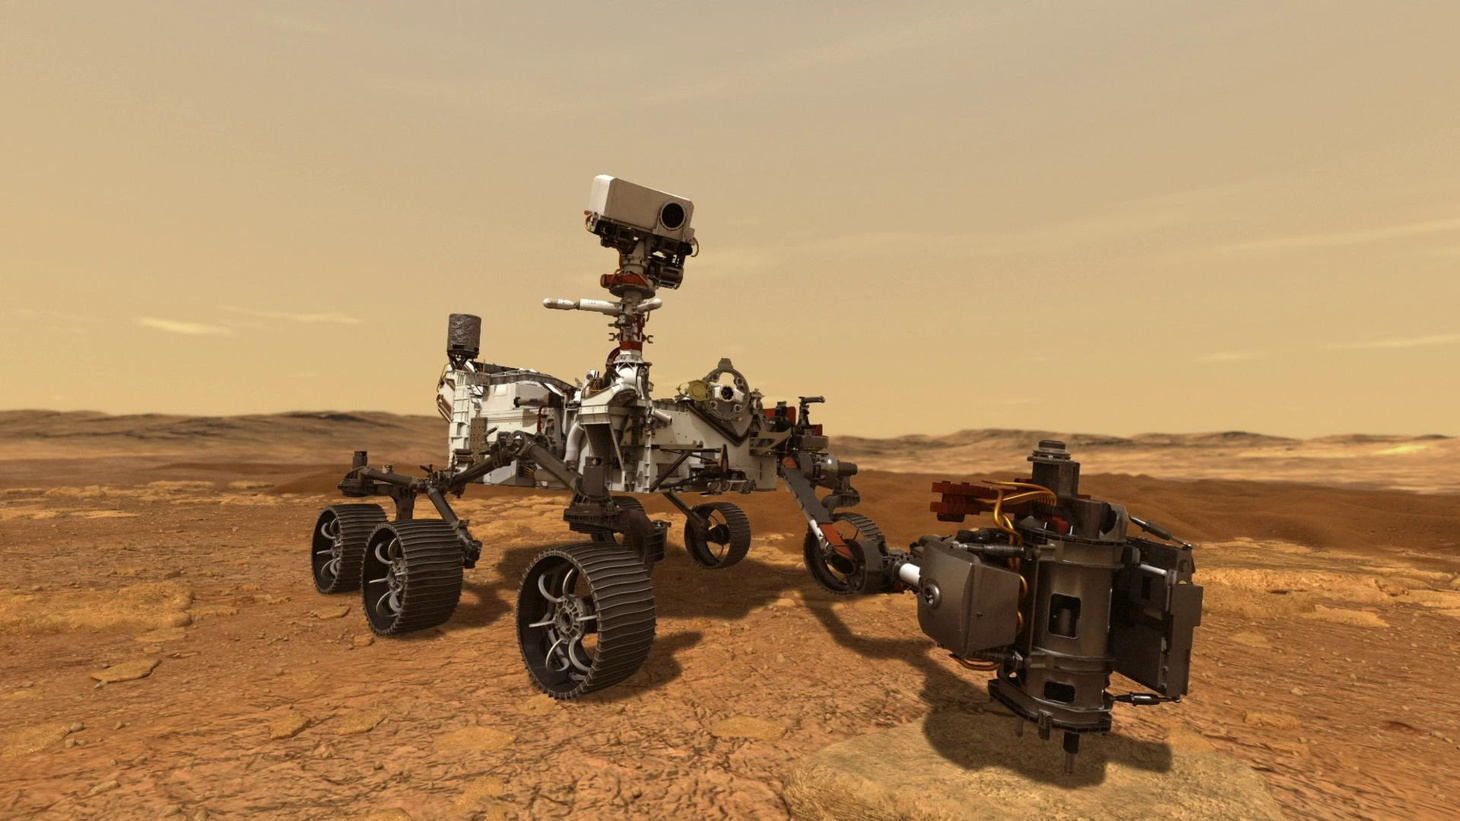 Mars Perseverance rover.